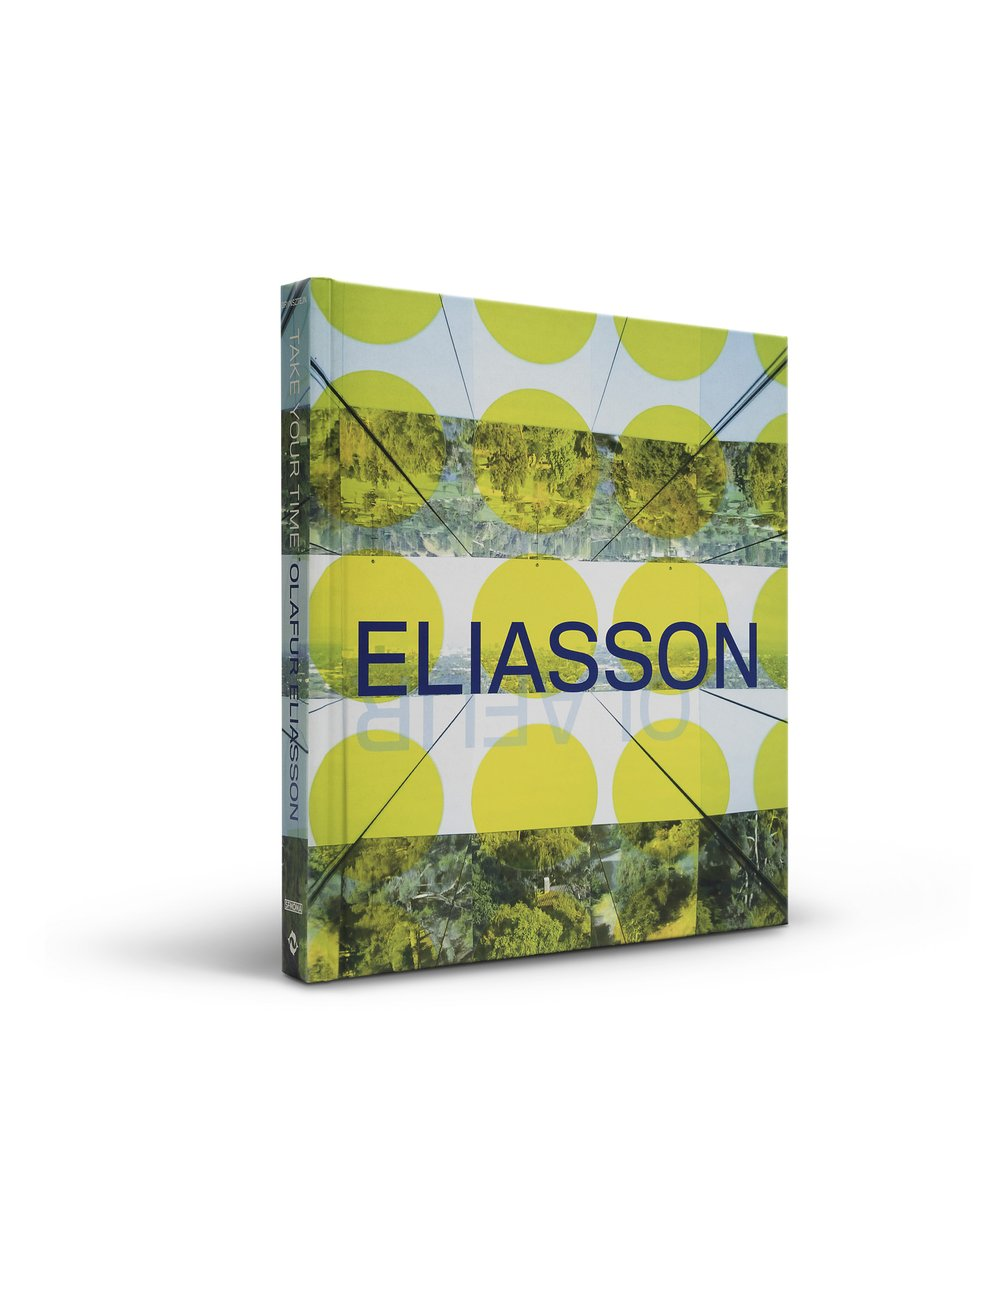 Take Your Time: Olafur Eliasson publication cover